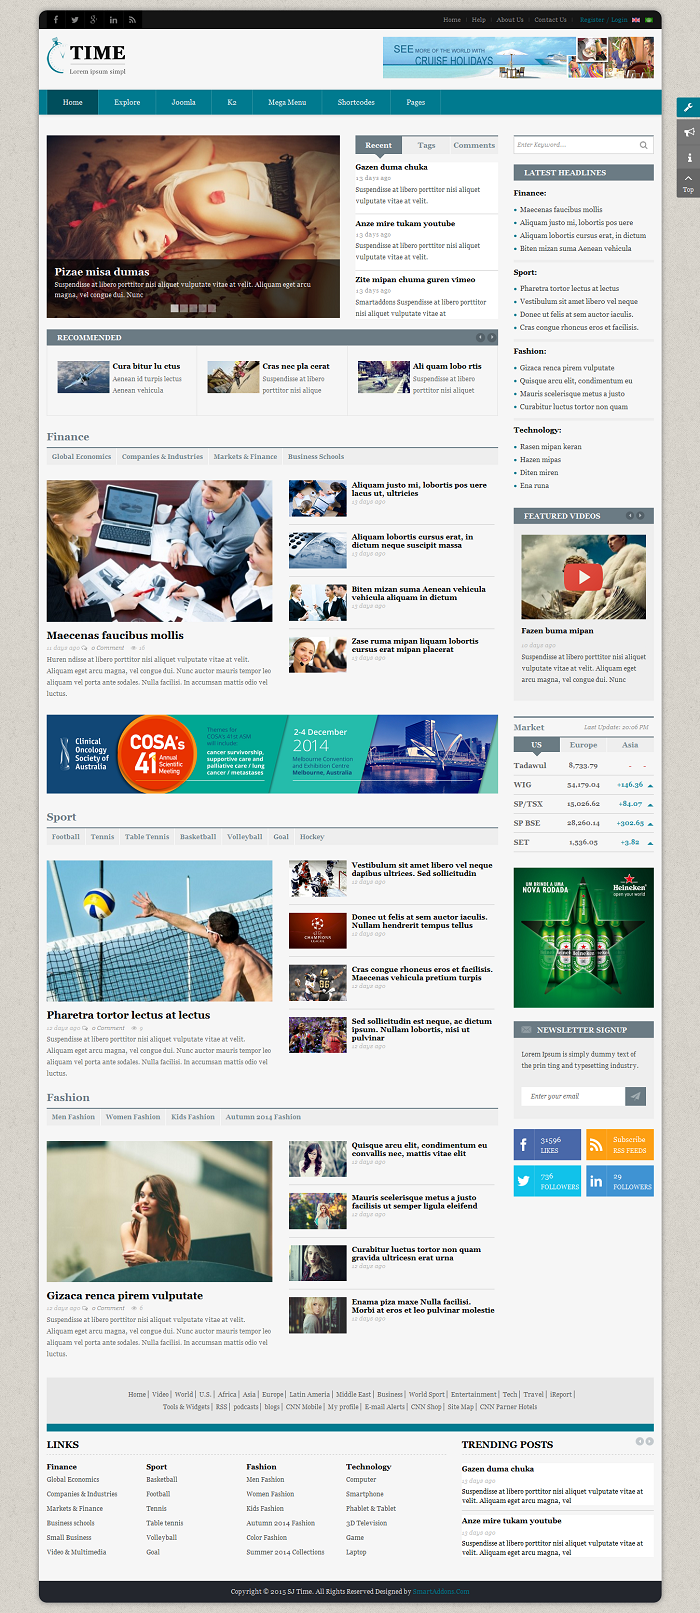 SJ Time - Responsive Joomla News Magazine Template - 17_rounded-layout.png